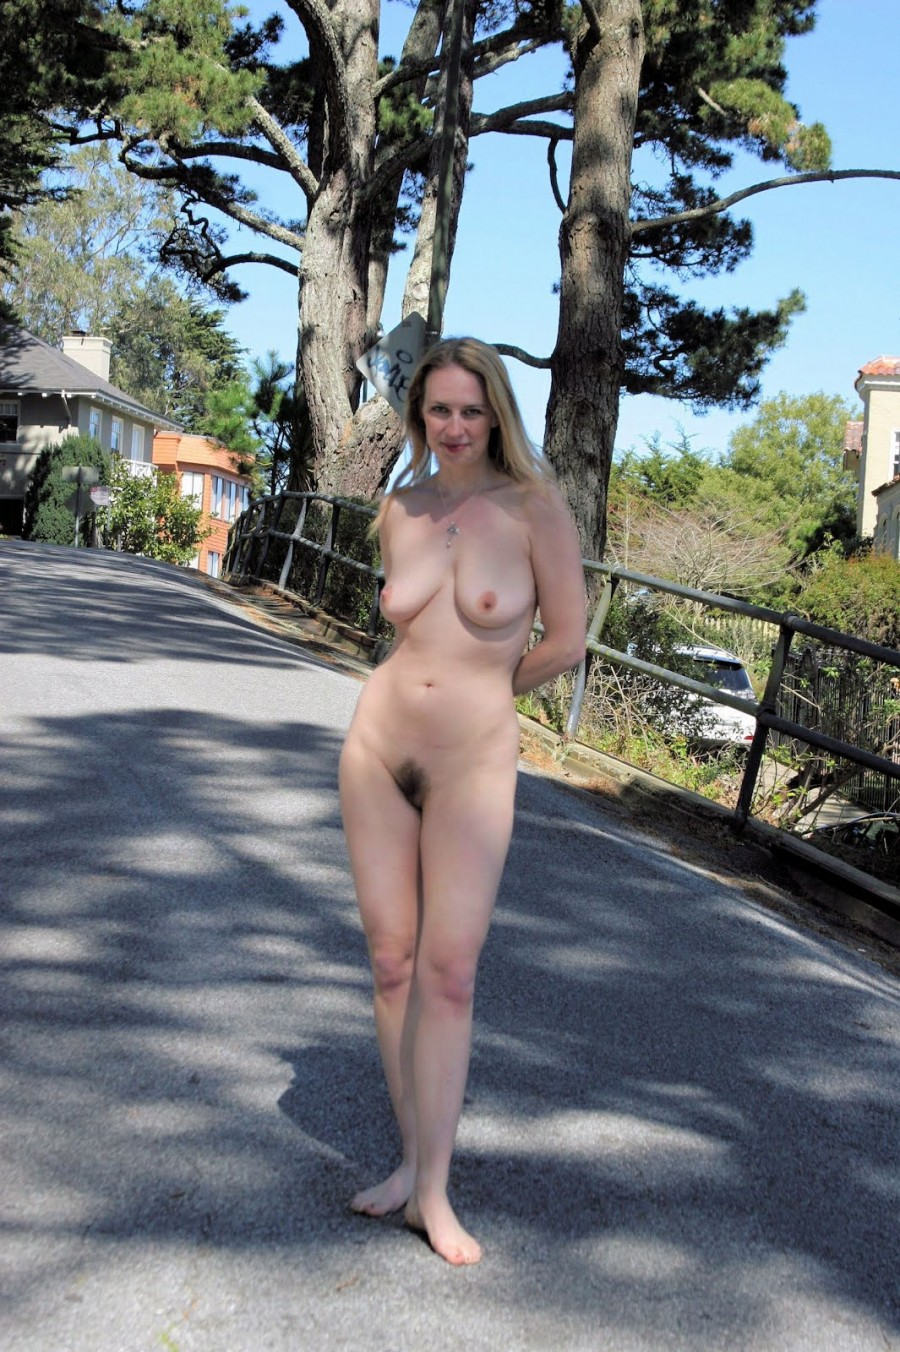 Hot mom in public naked — photo 8